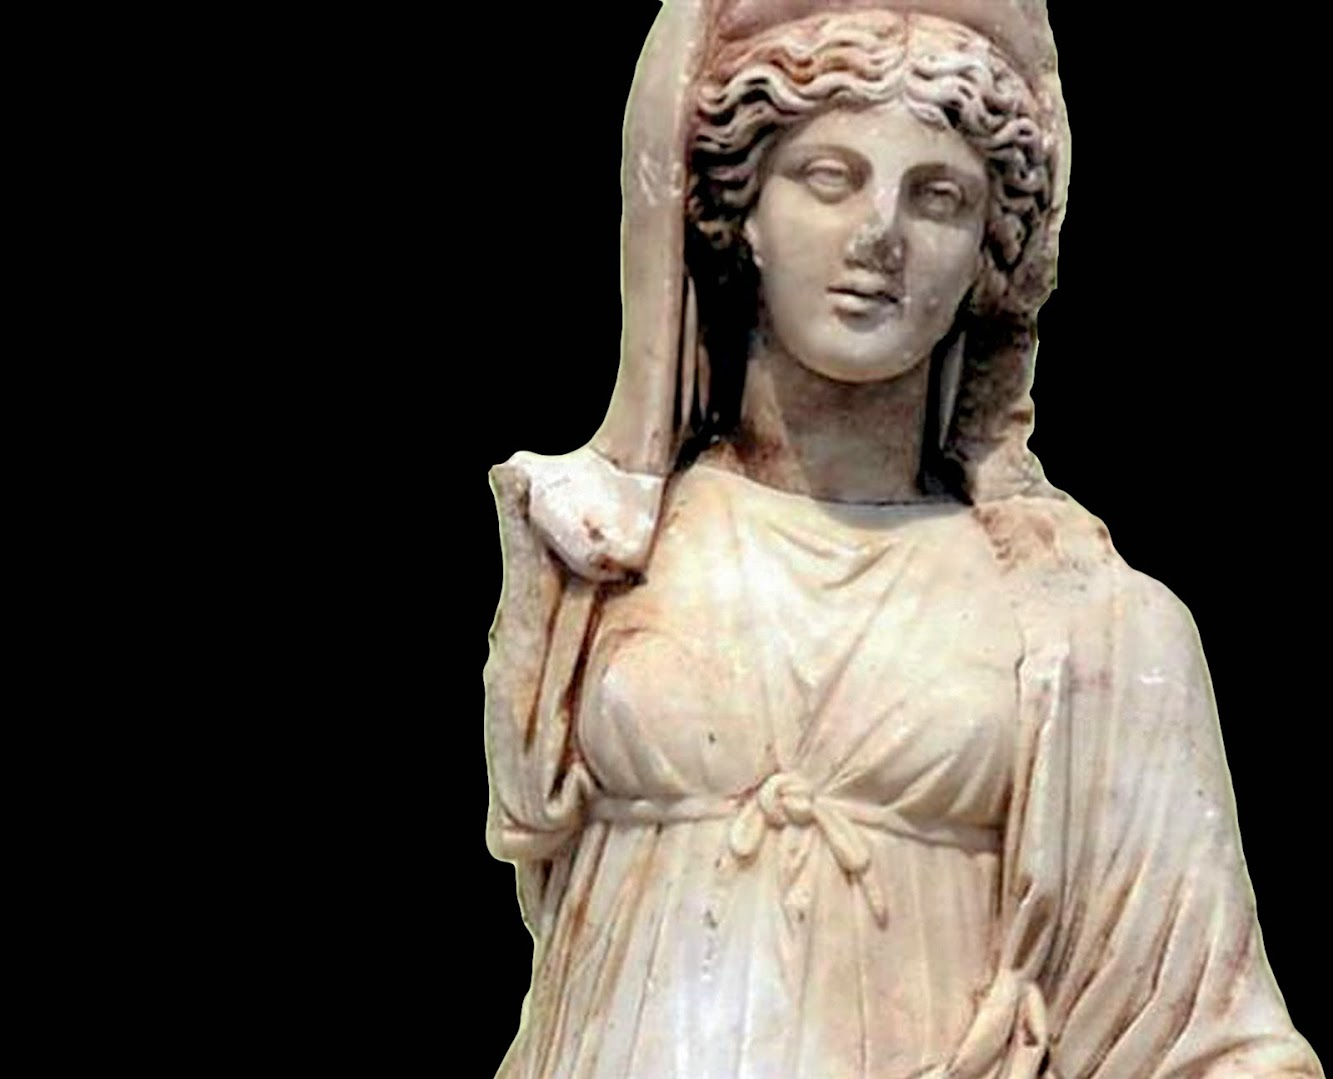 Search to find missing pieces of Greek statue started